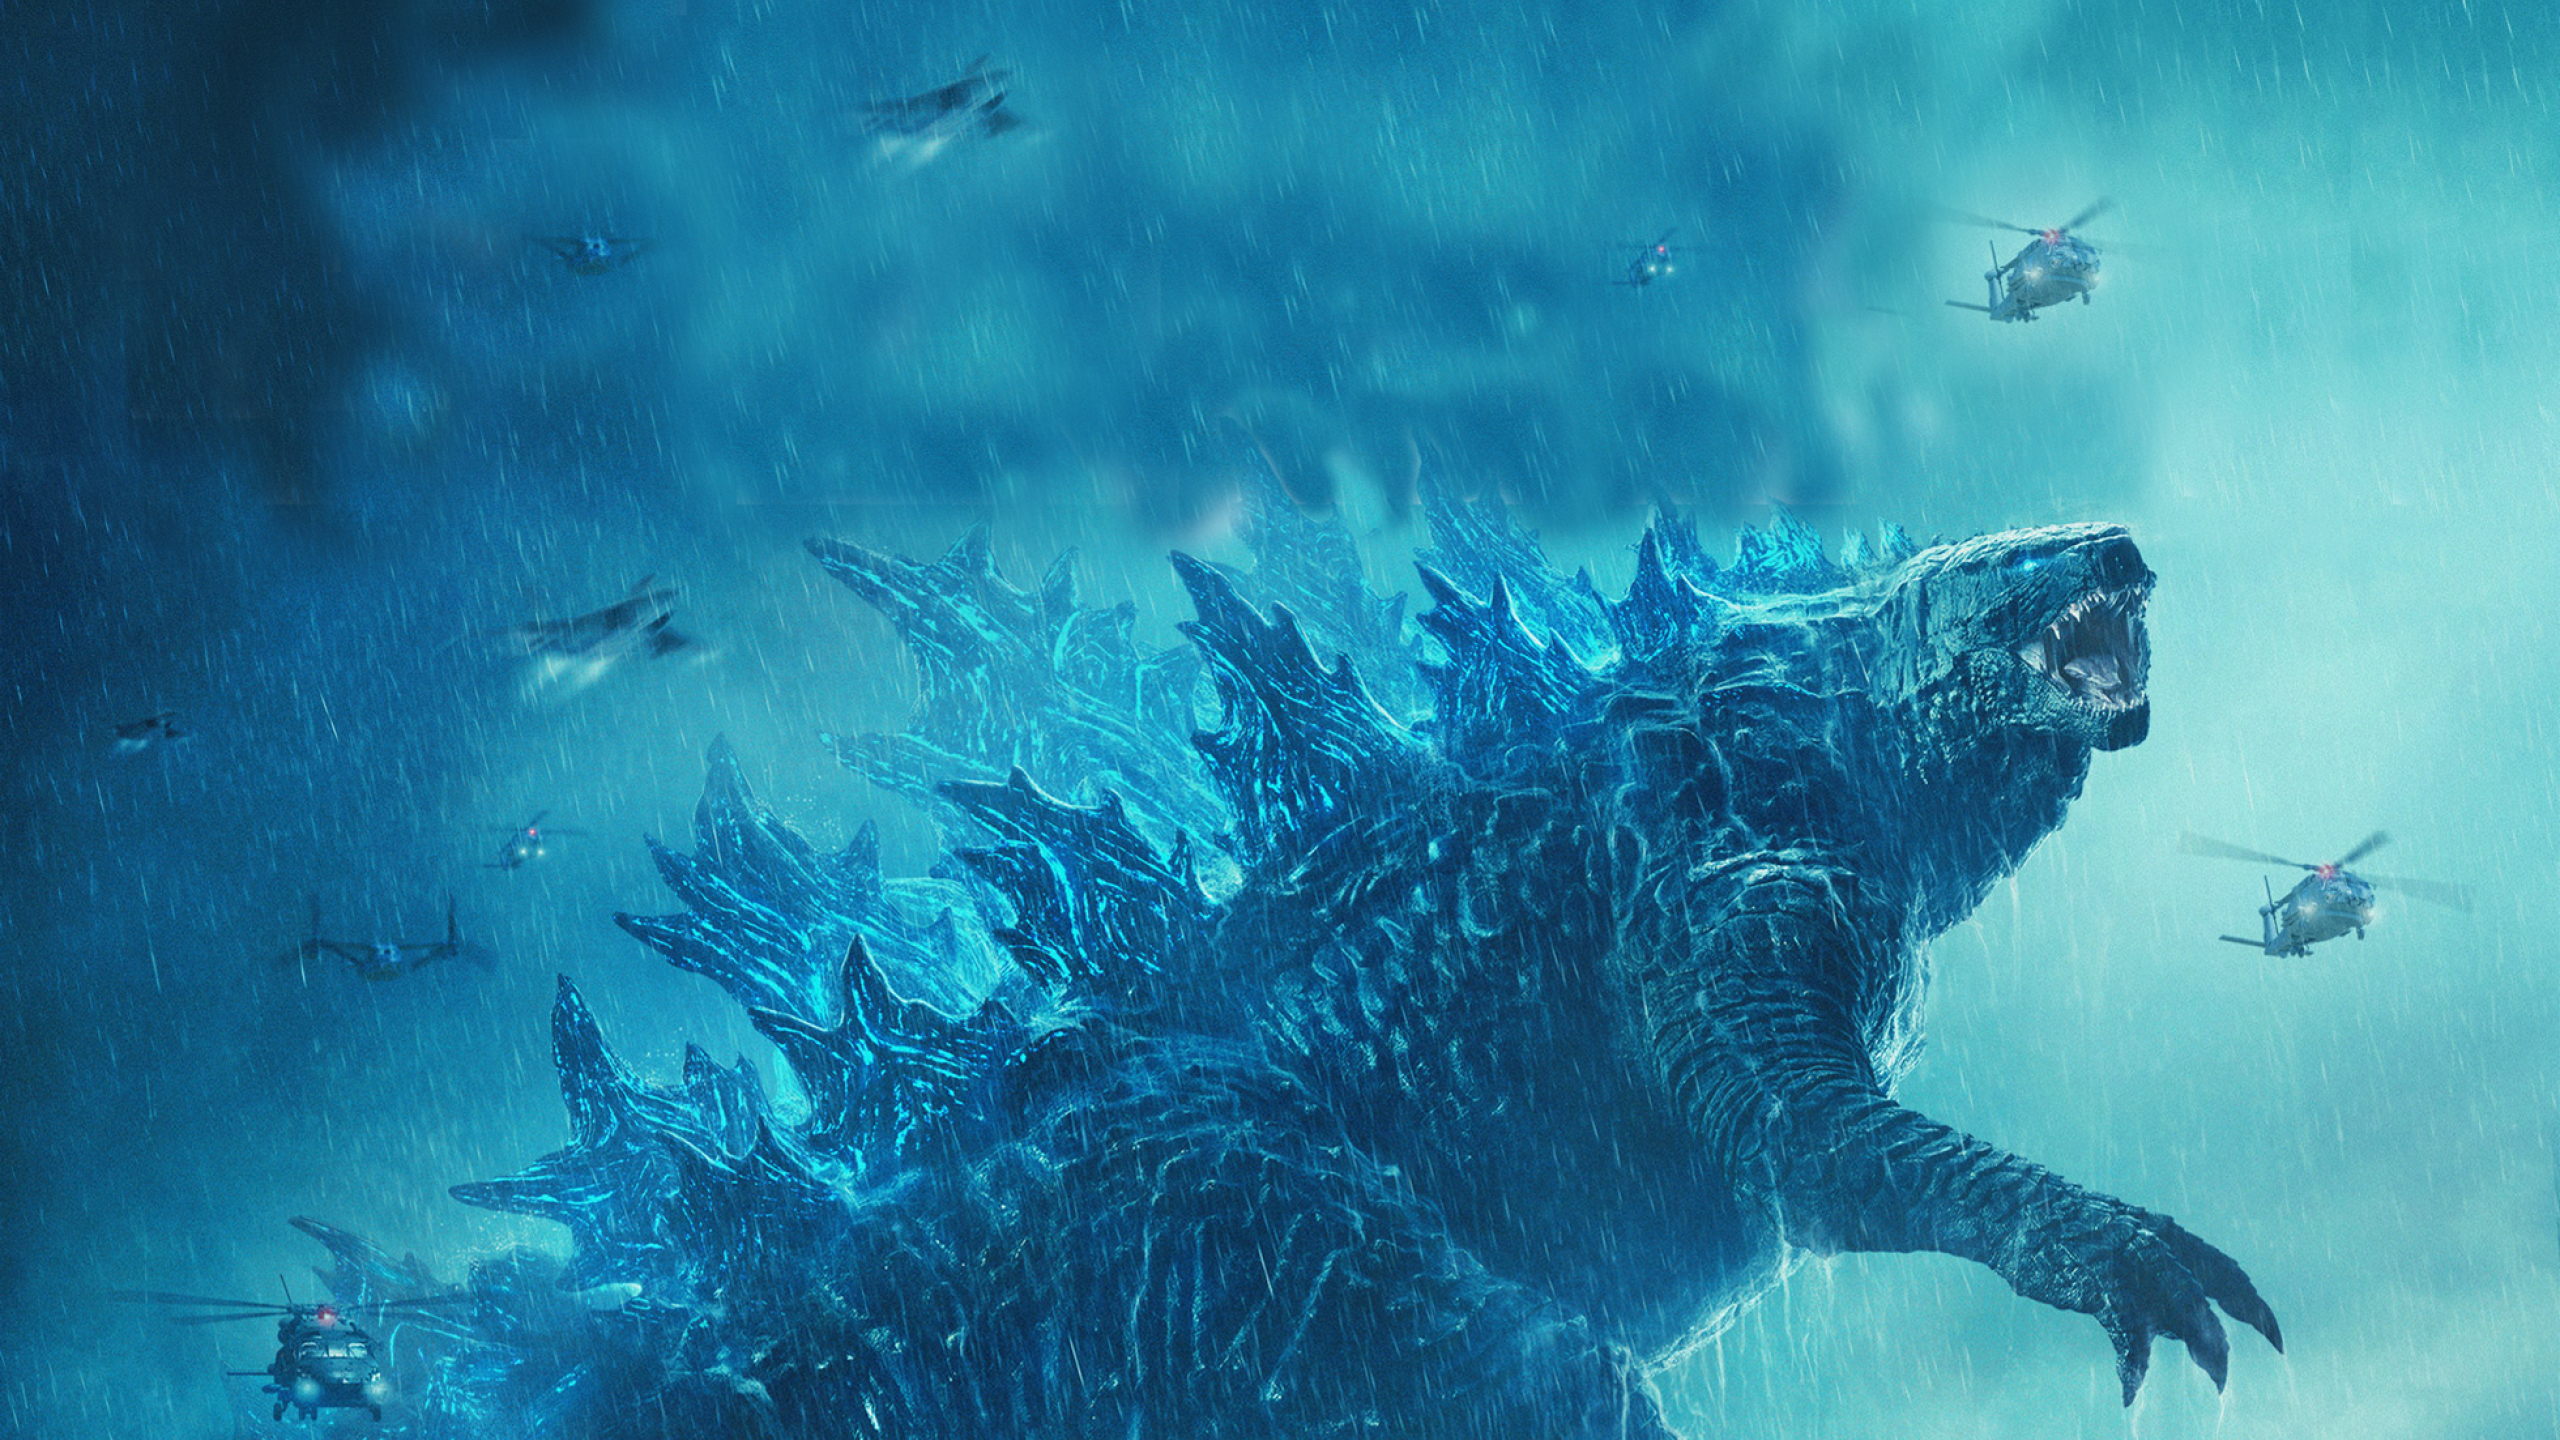 2560x1440 Godzilla 2019 1440p Resolution Wallpaper Hd Movies 4k Wallpapers Images Photos And Background